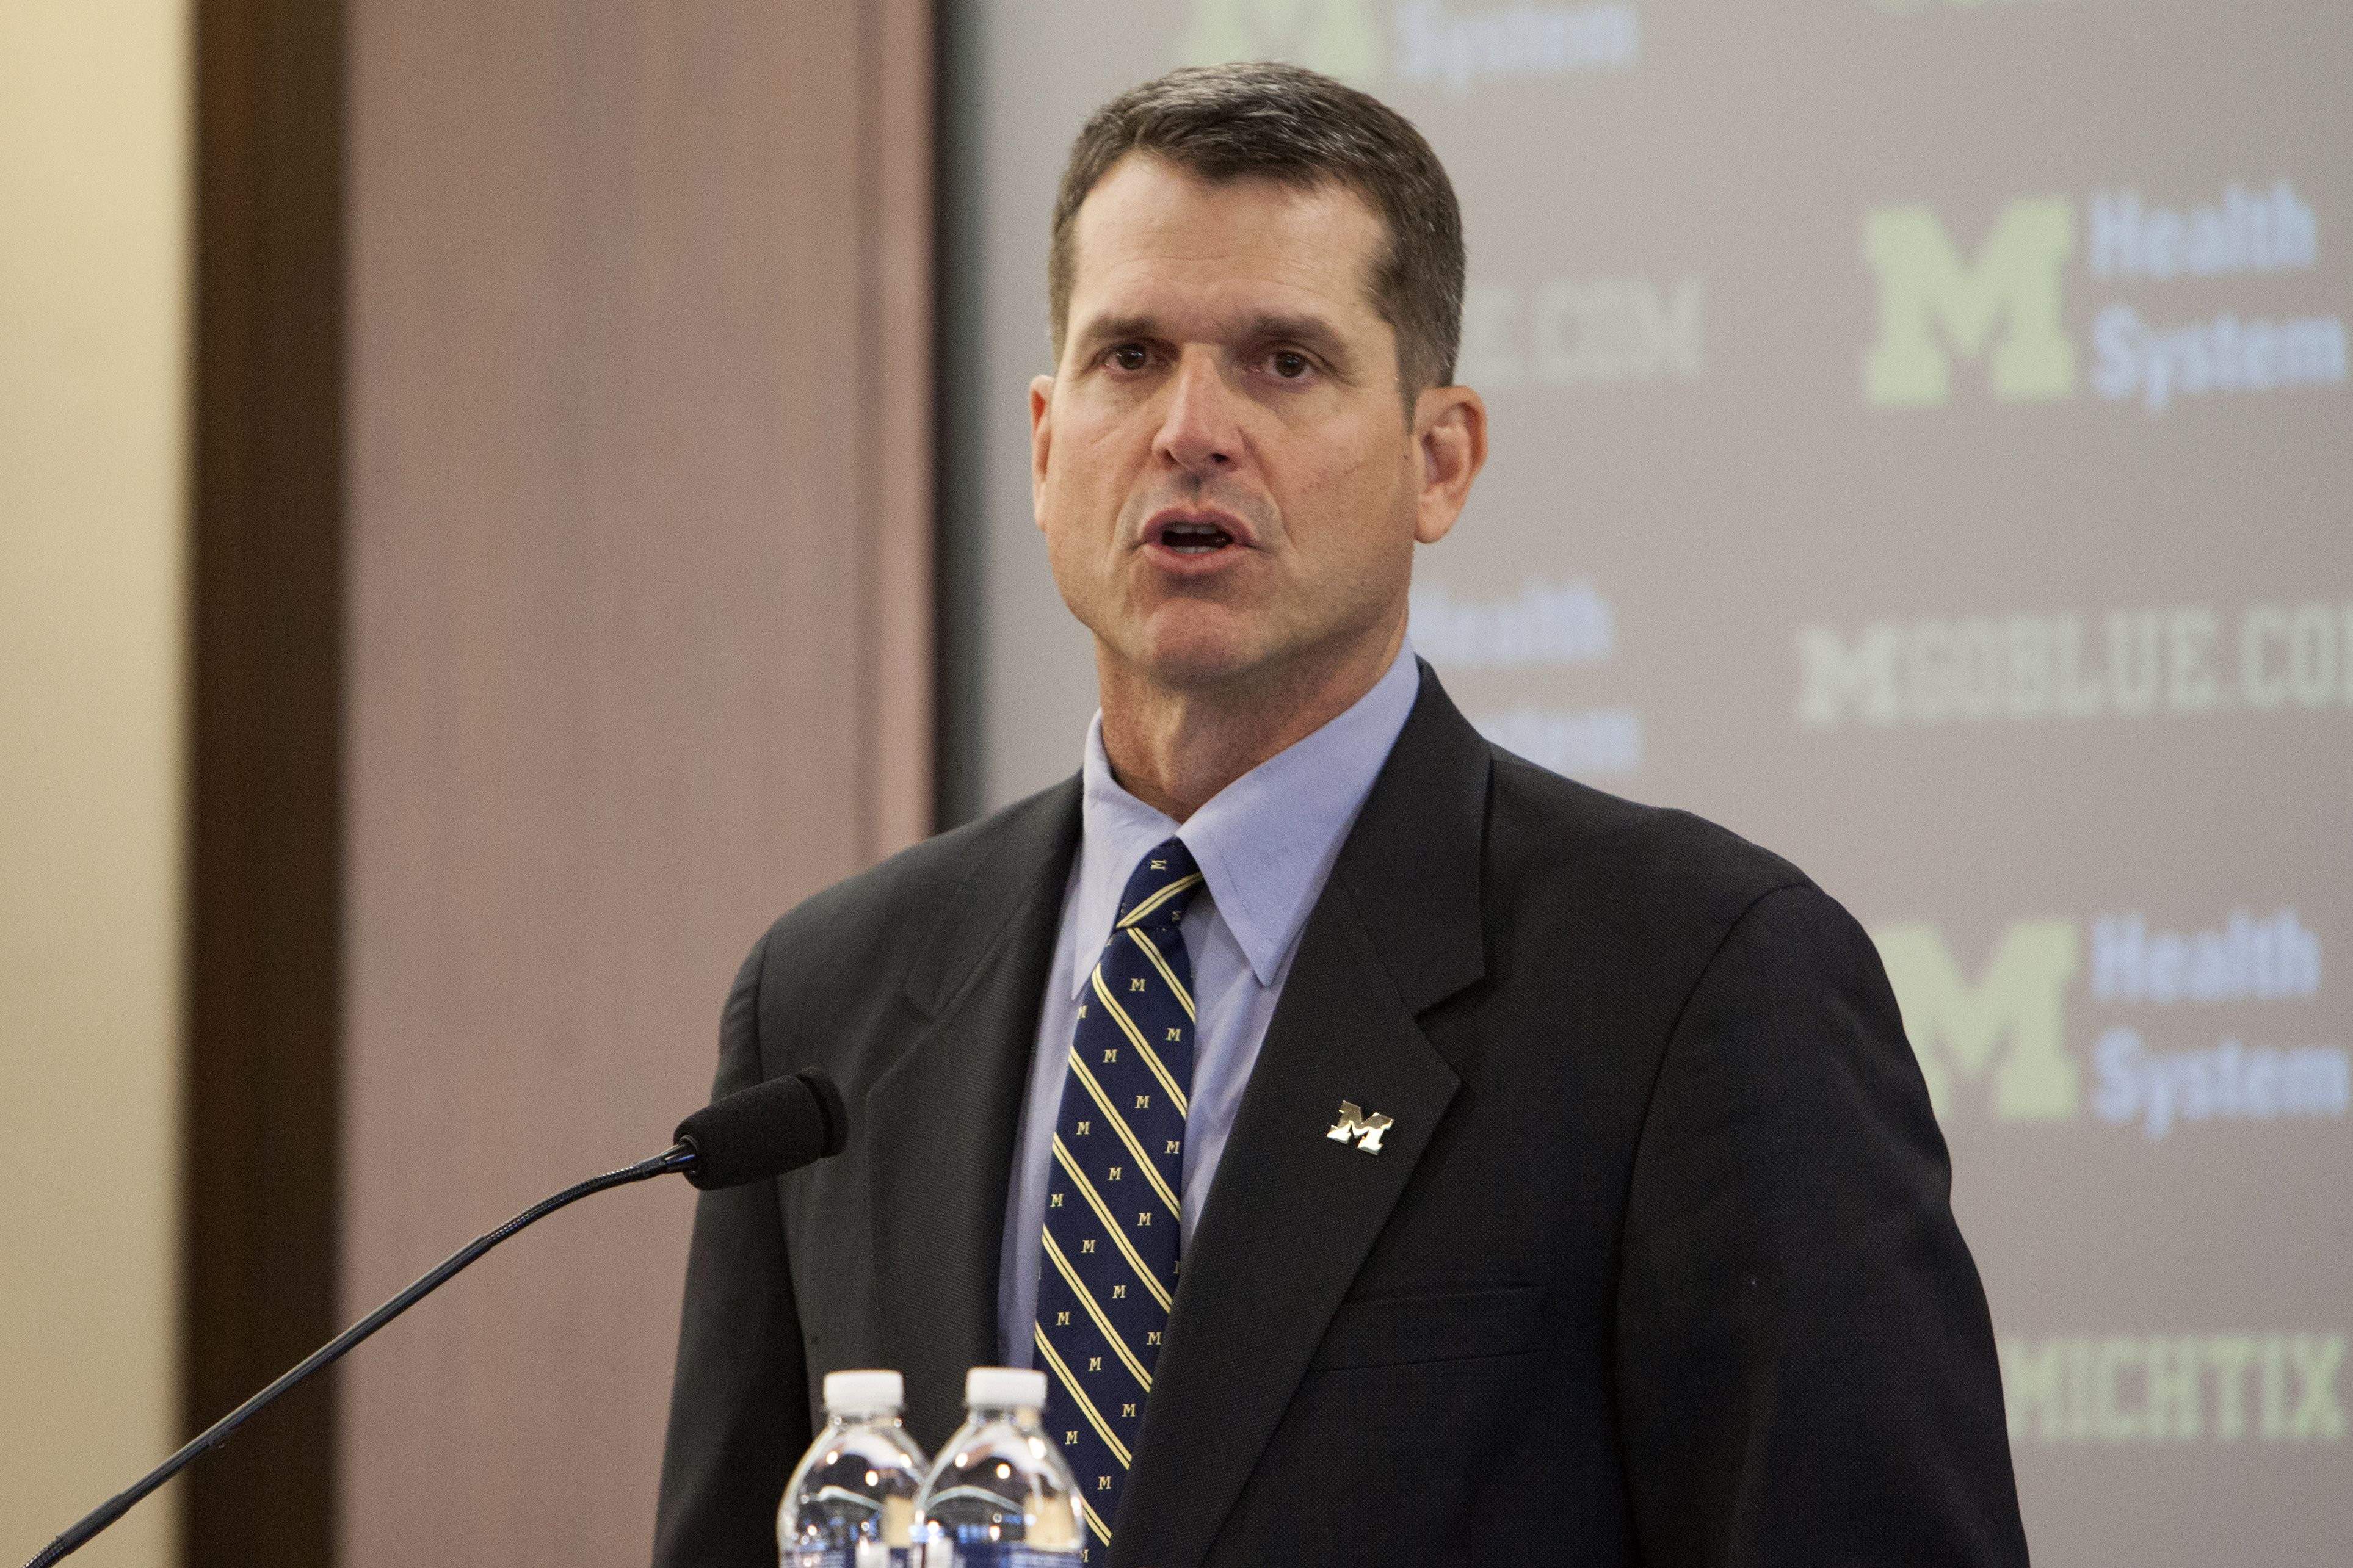 Roundup Harbaugh secures full coaching staff Go blue